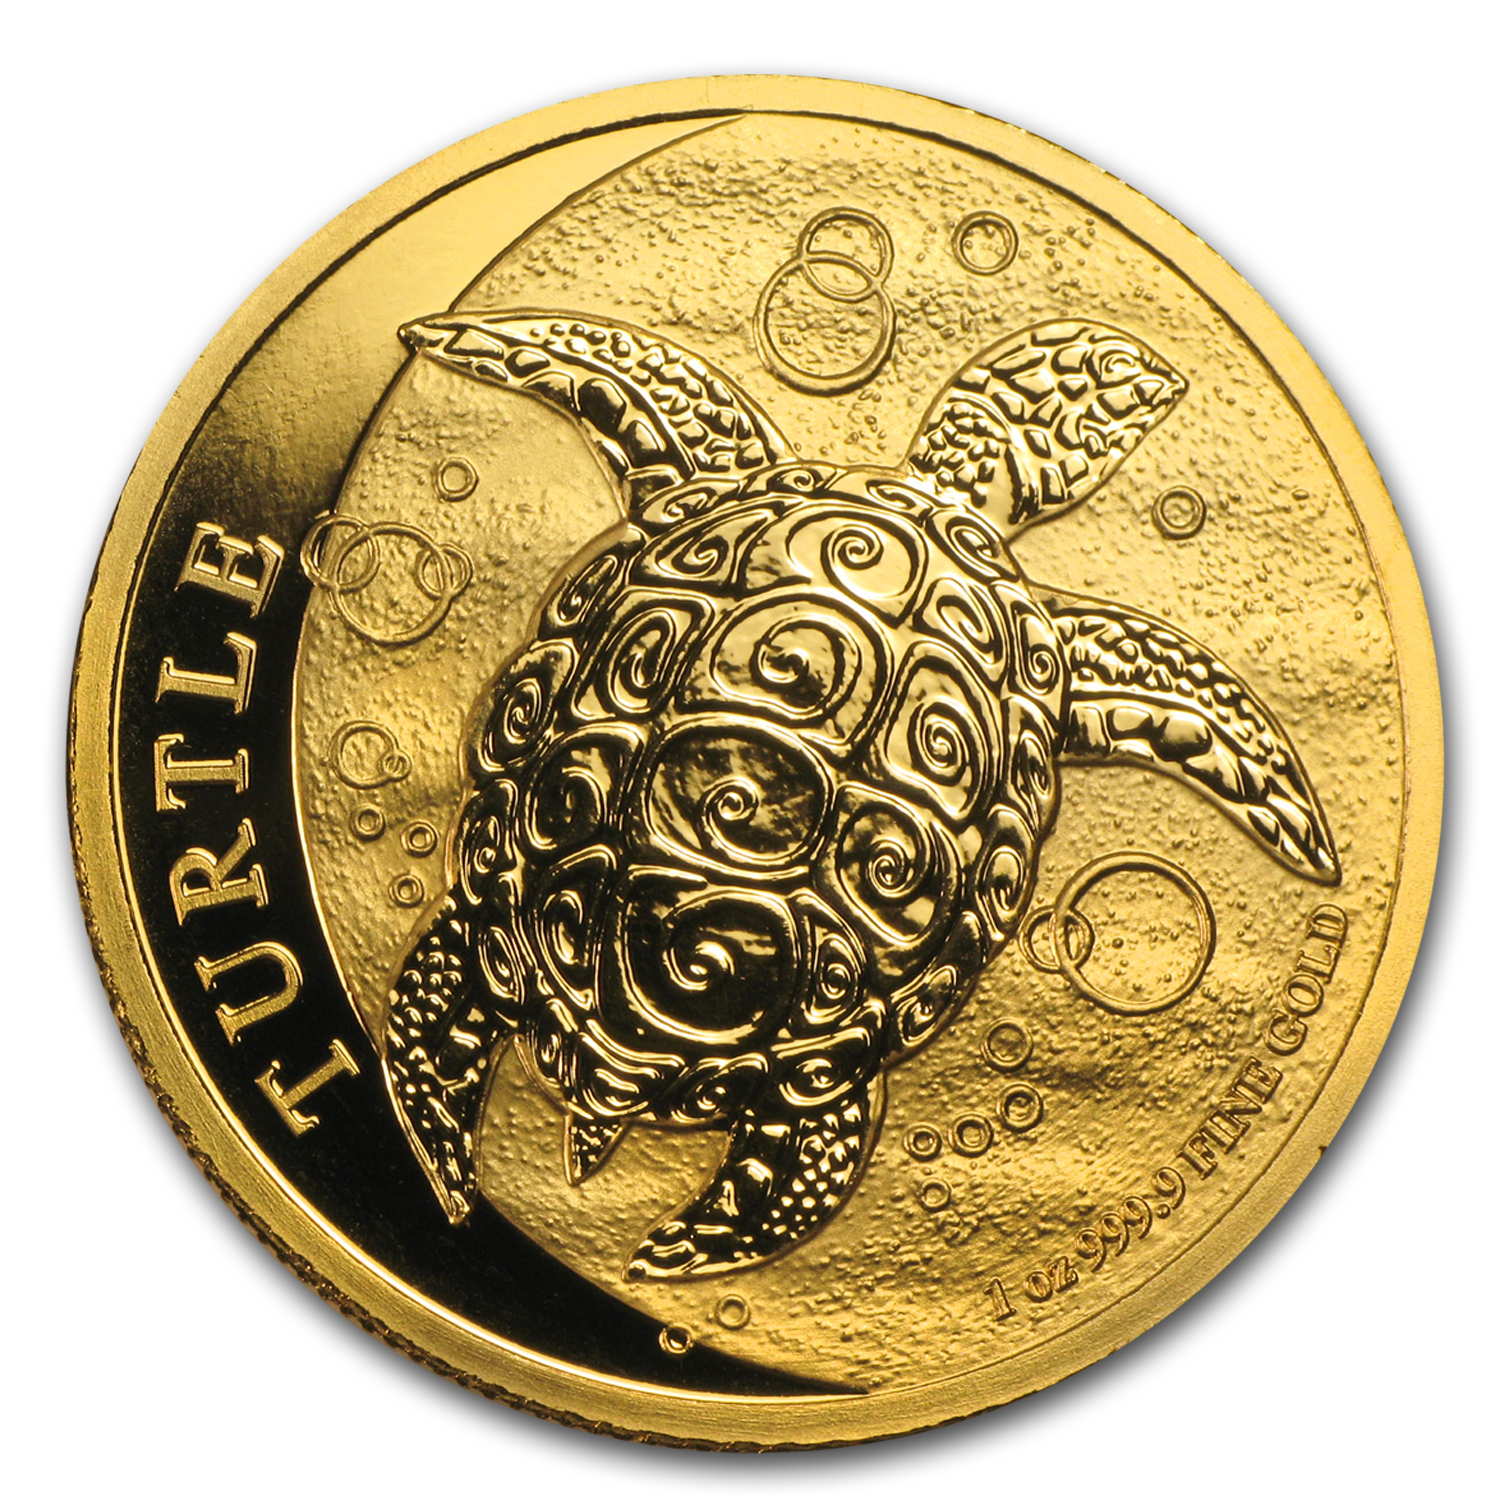 2014 1 oz Gold New Zealand Mint $200 Niue Hawksbill Turtle